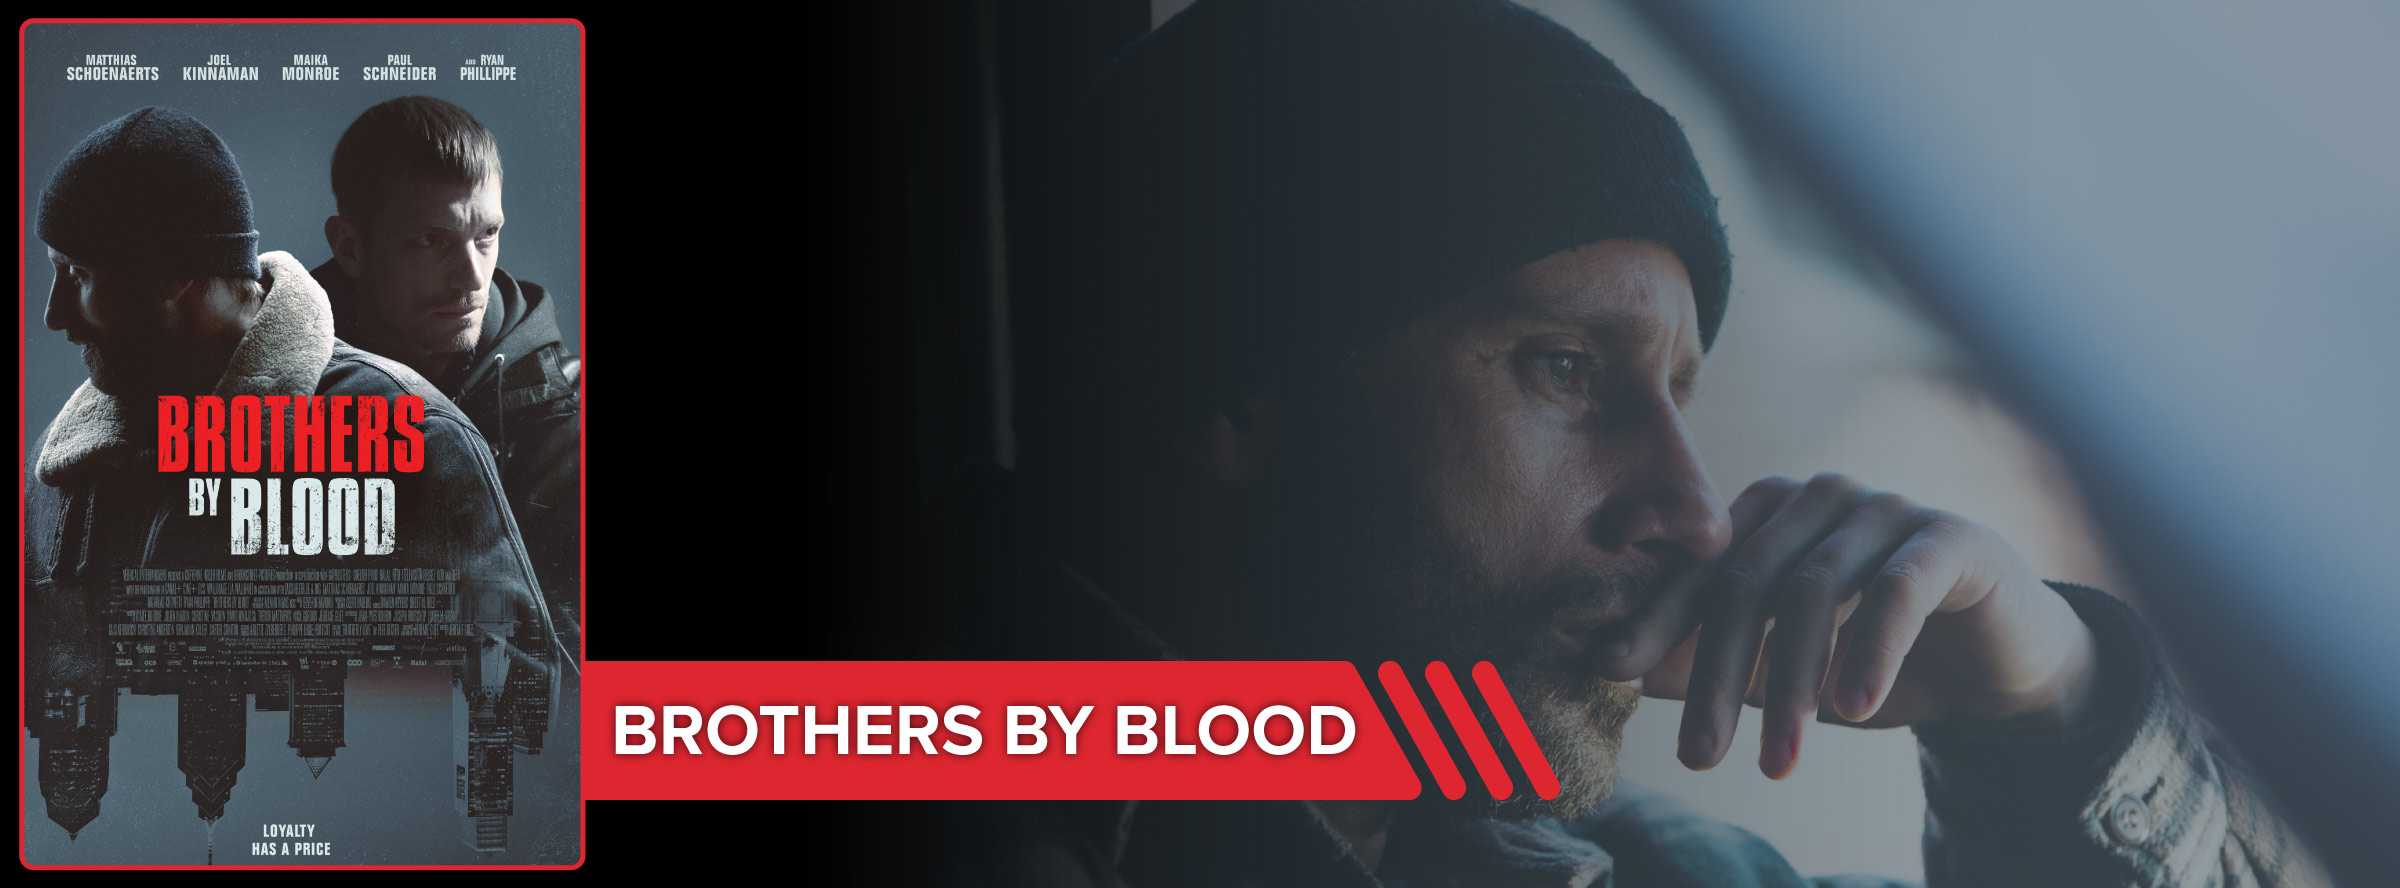 Slider Image for Brothers By Blood